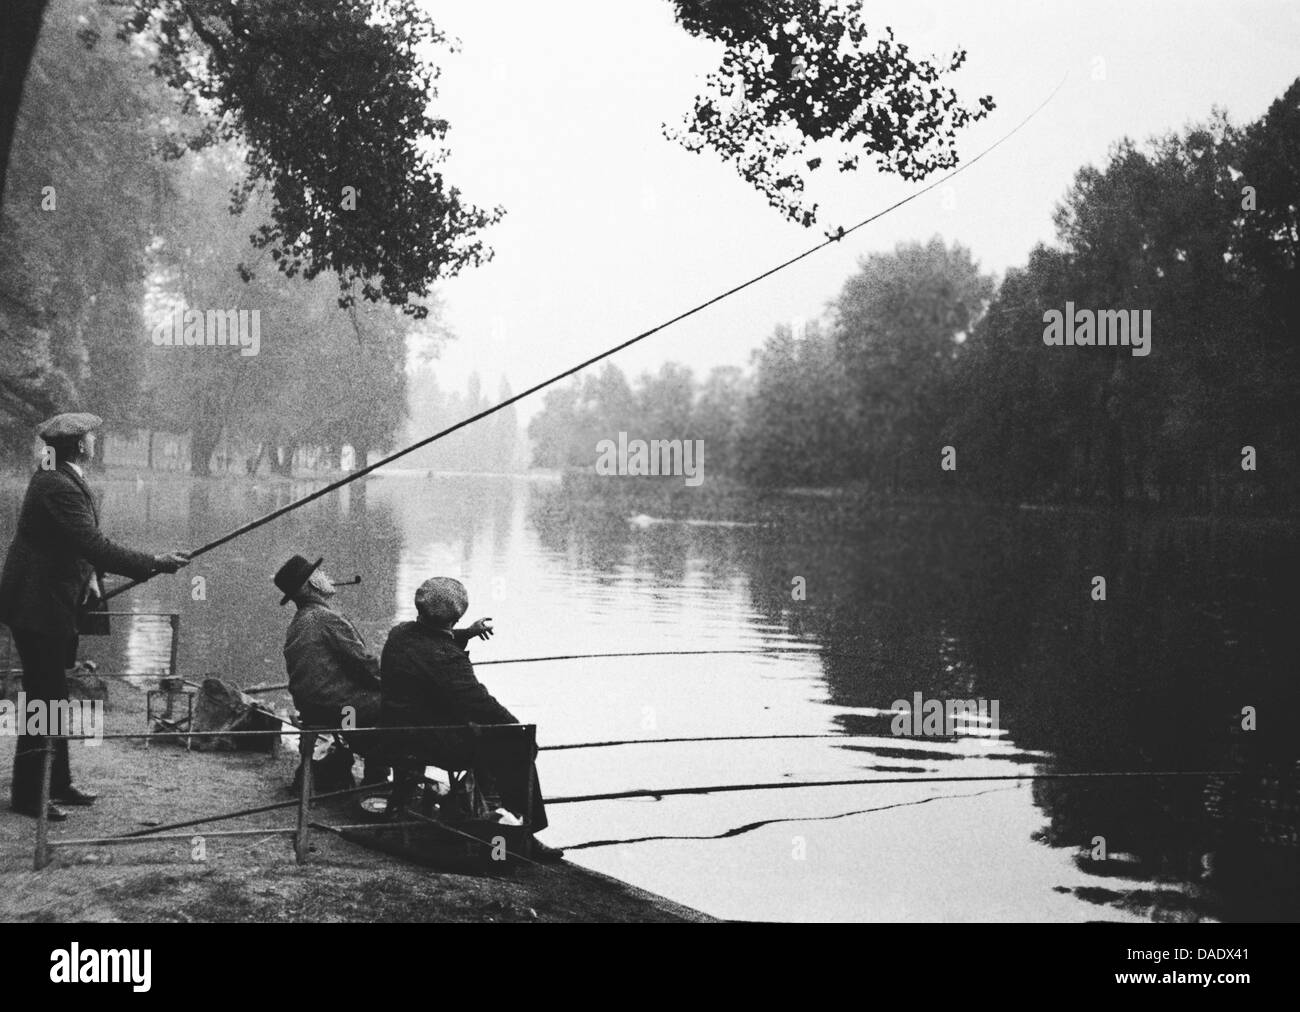 Paris 1934, men fishing. Image by photographer Fred Stein (1909-1967) who emigrated 1933 from Nazi Germany to France - Stock Image